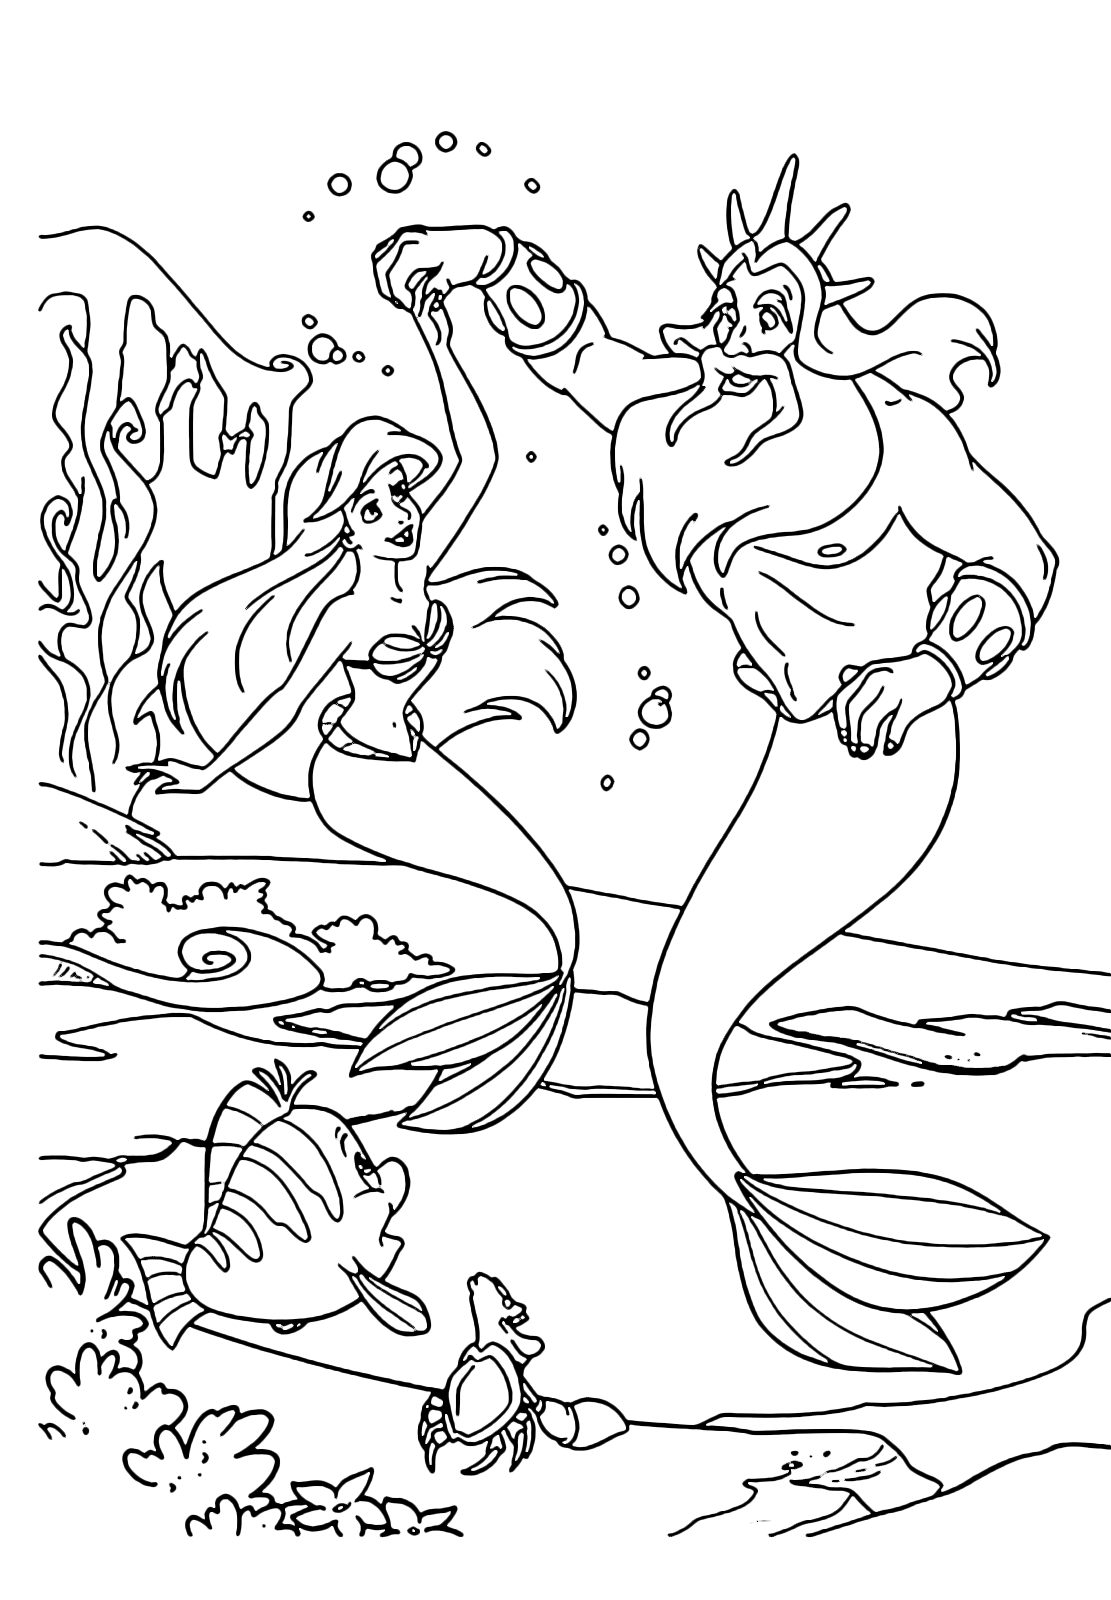 The Little Mermaid Ariel dances with his father Triton